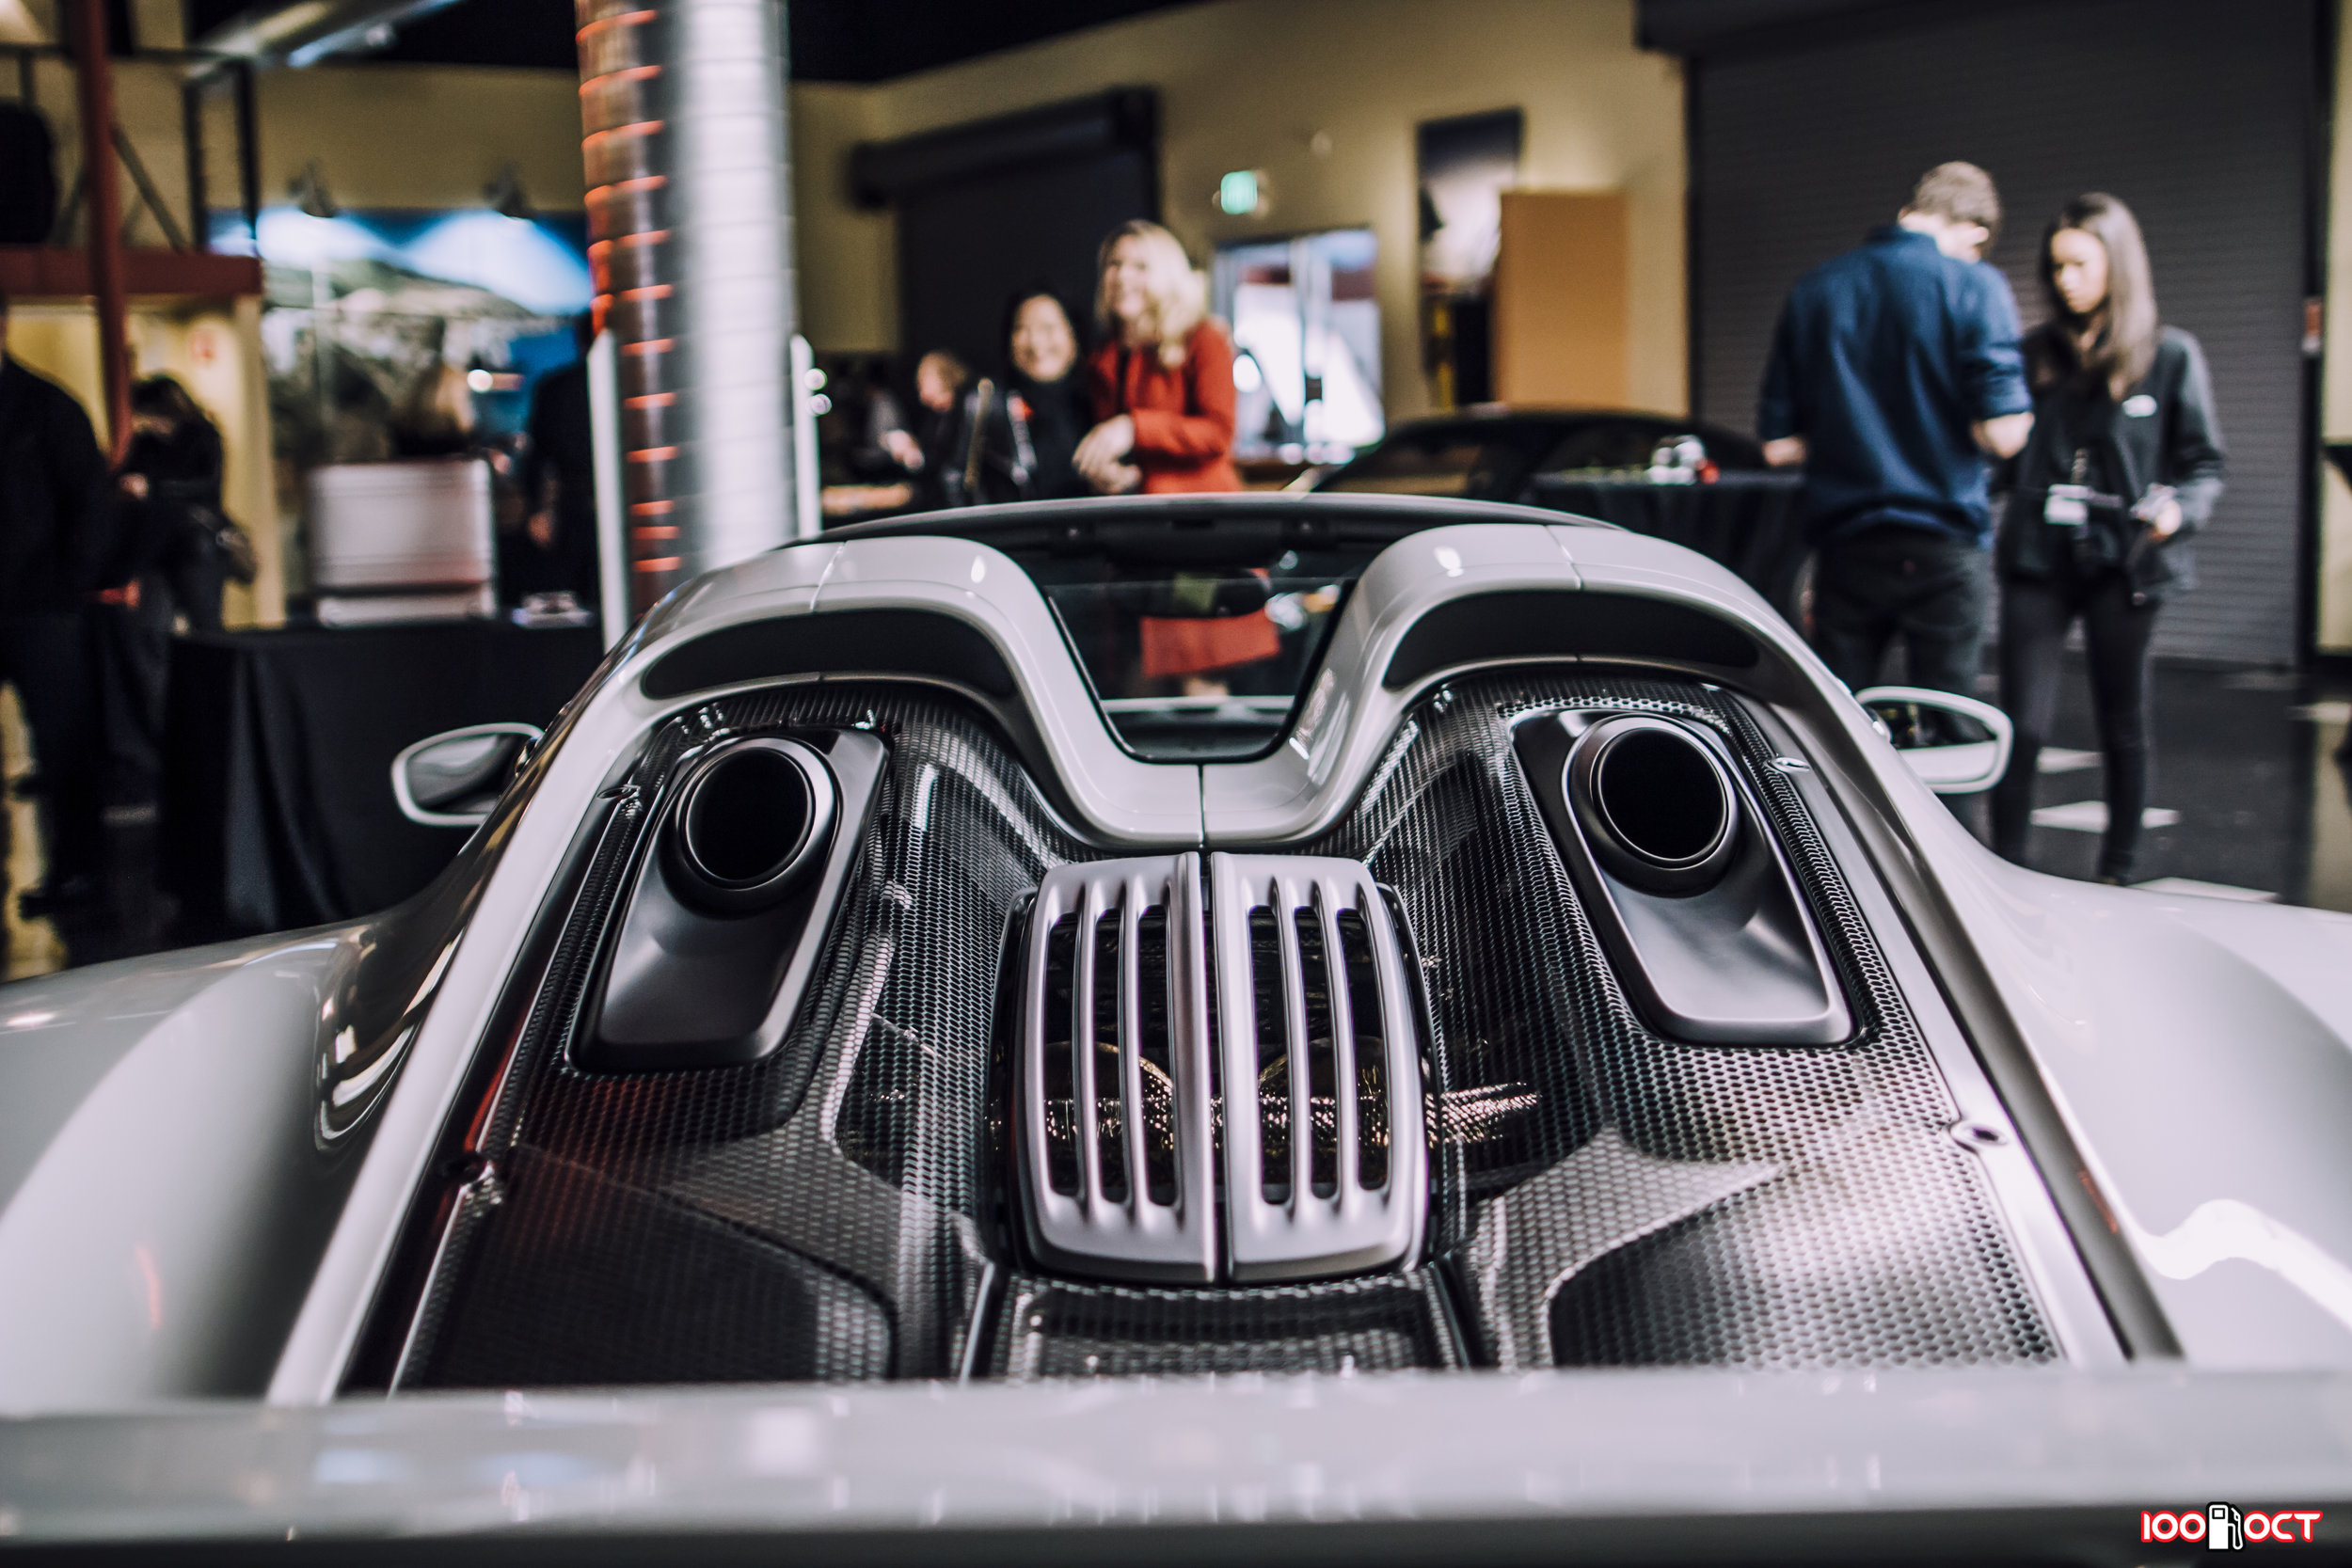 Our cocktail reception features the best German supercars!